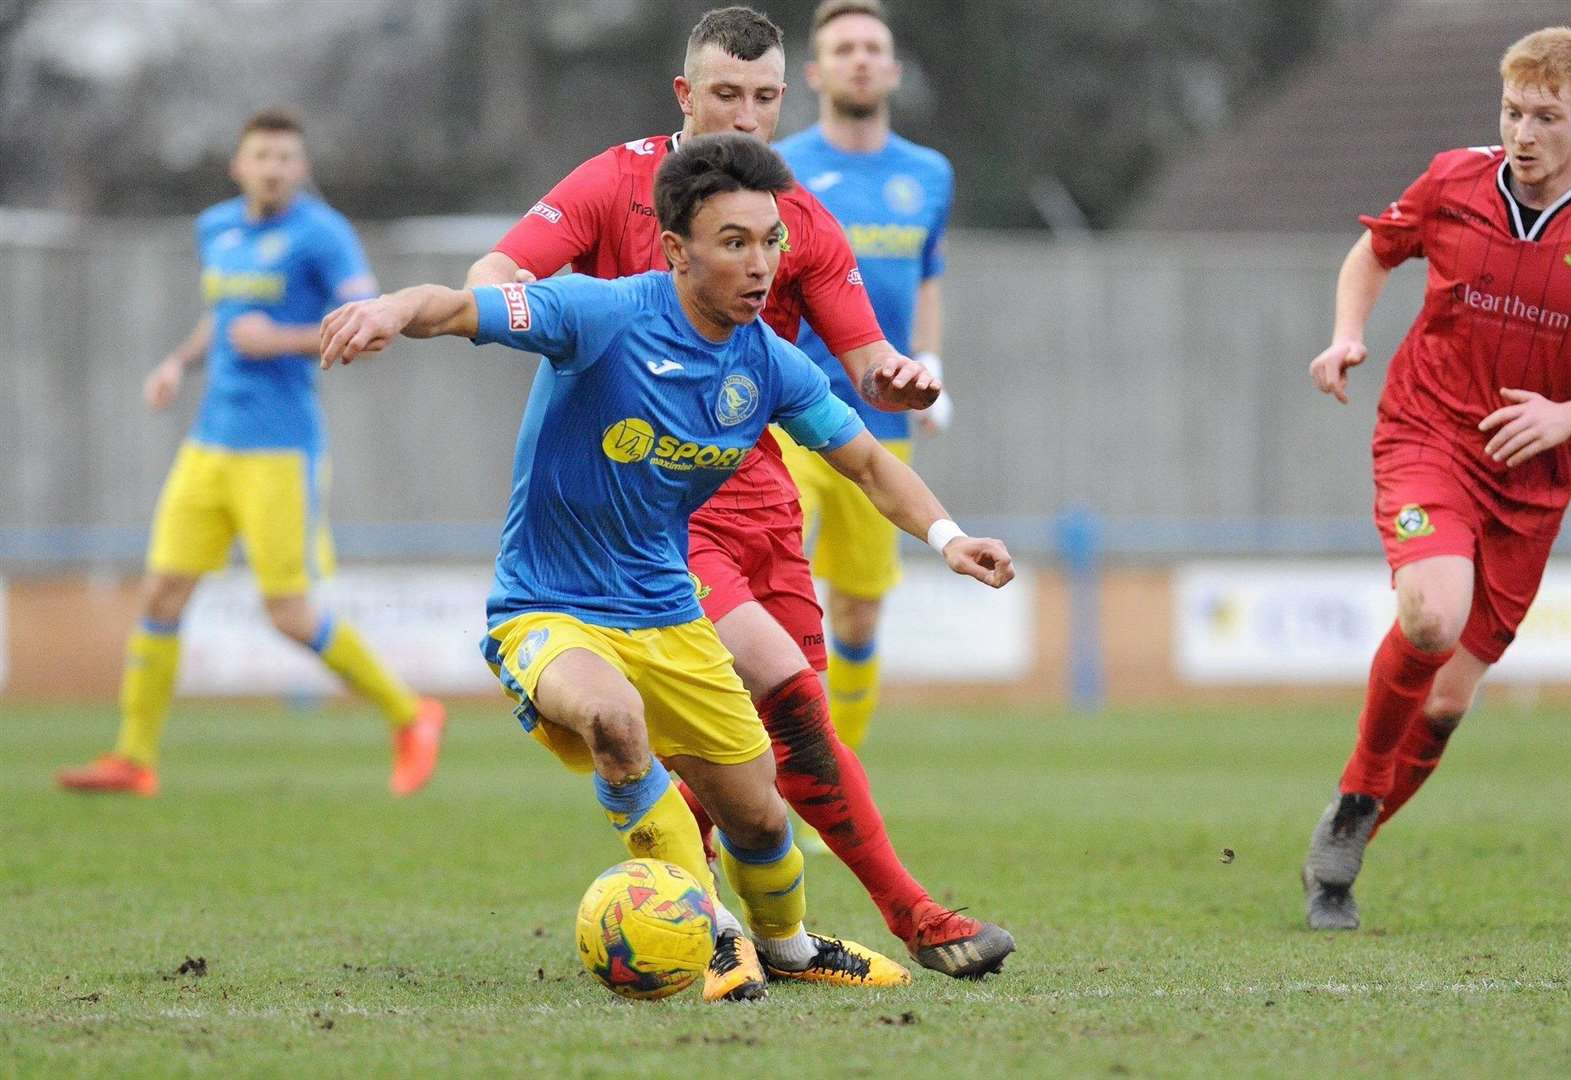 King's Lynn Town make hard work of extending long unbeaten run at home to Barwell in the Southern League